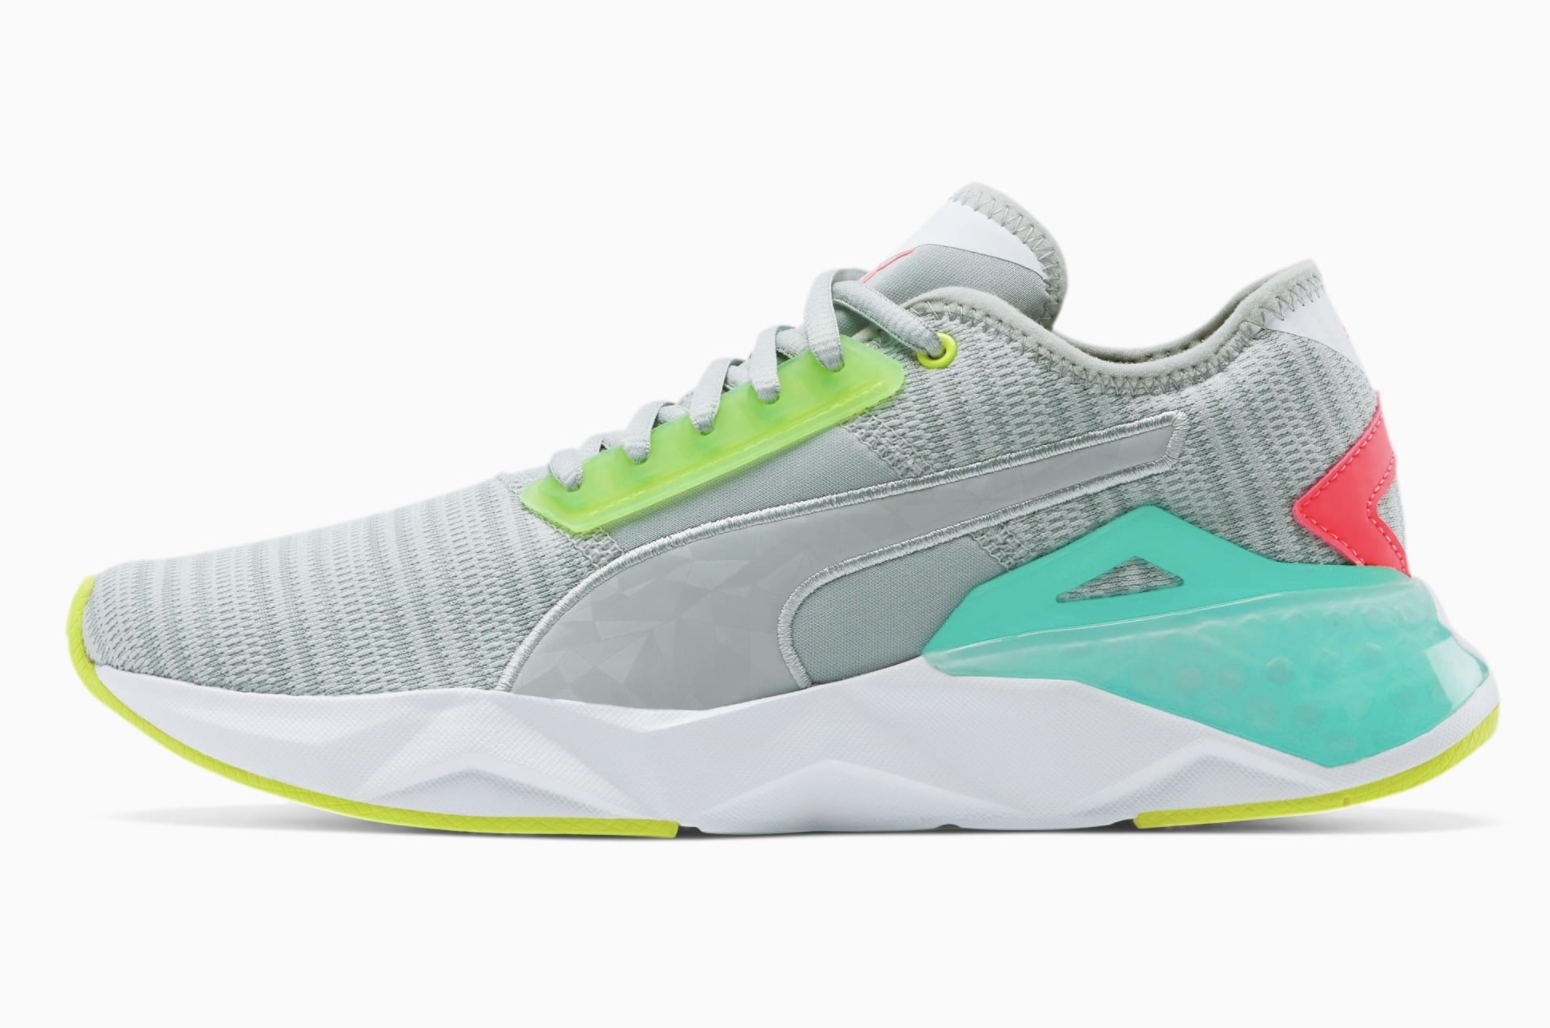 Puma's CELL Plasmic Women's Training Shoes with gray, lime green, light blue, and pink detailing